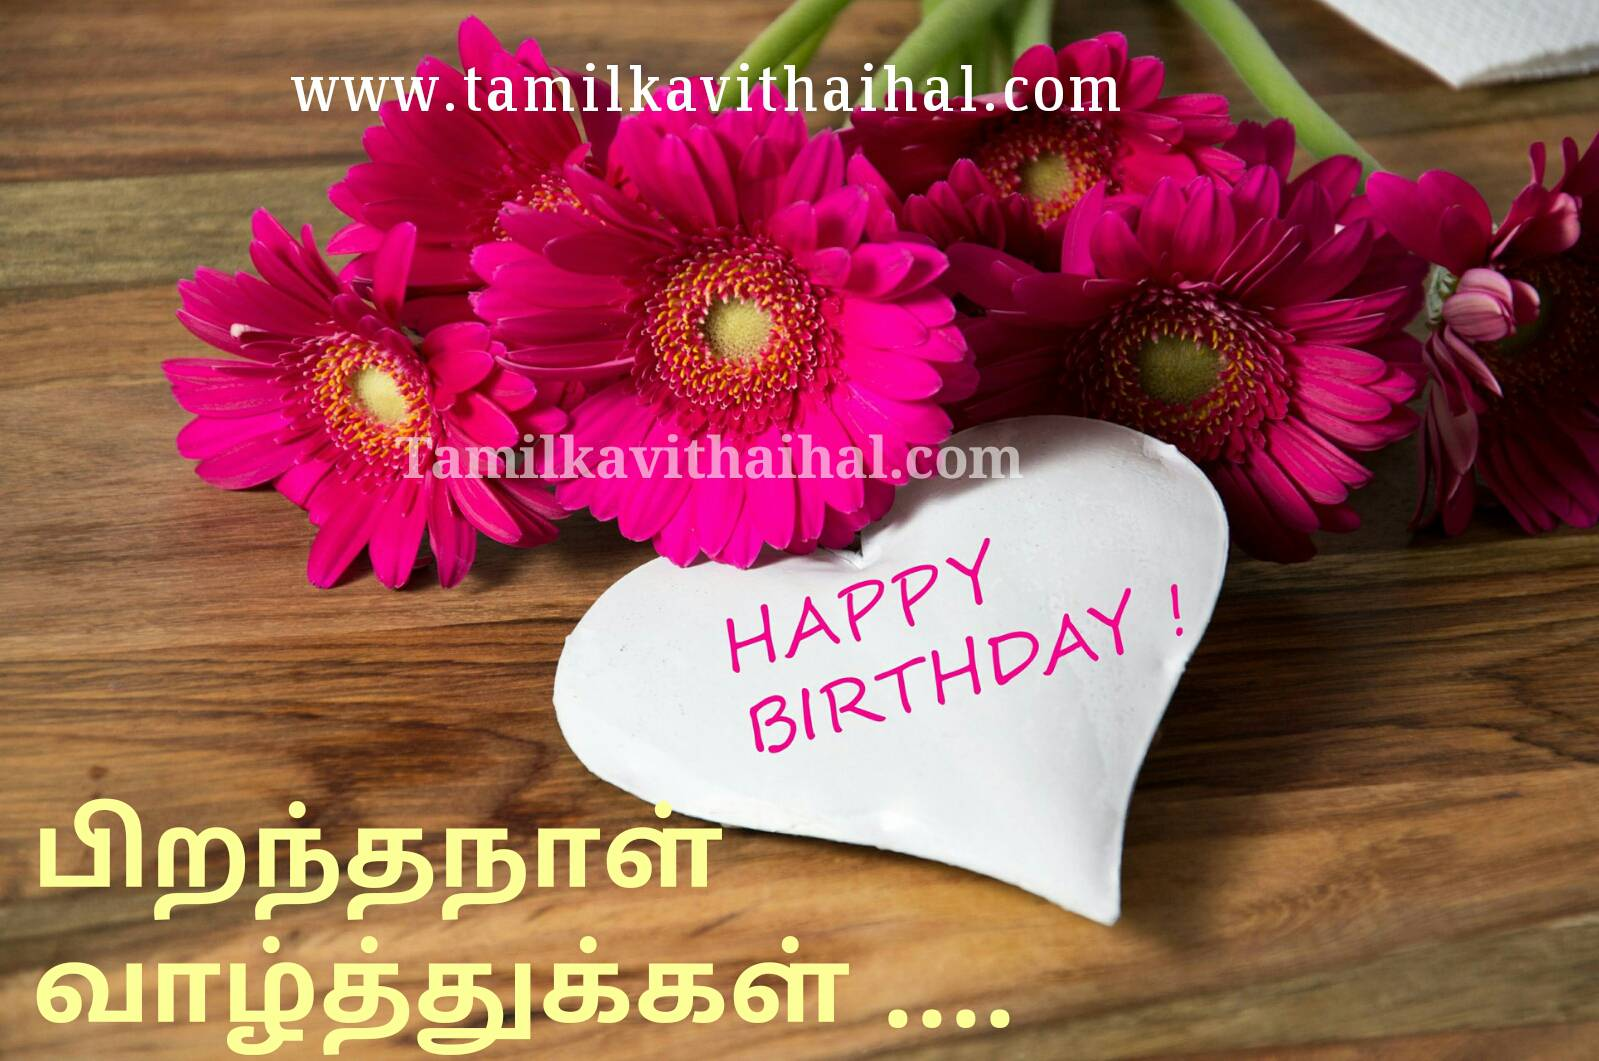 hd wallpaper birthday wishes ; beautiful-pirantha-naal-valthukkal-quotes-in-tamil-word-happy-birthday-wishes-sweet-heart-greeting-and-blessing-message-hd-wallpaper